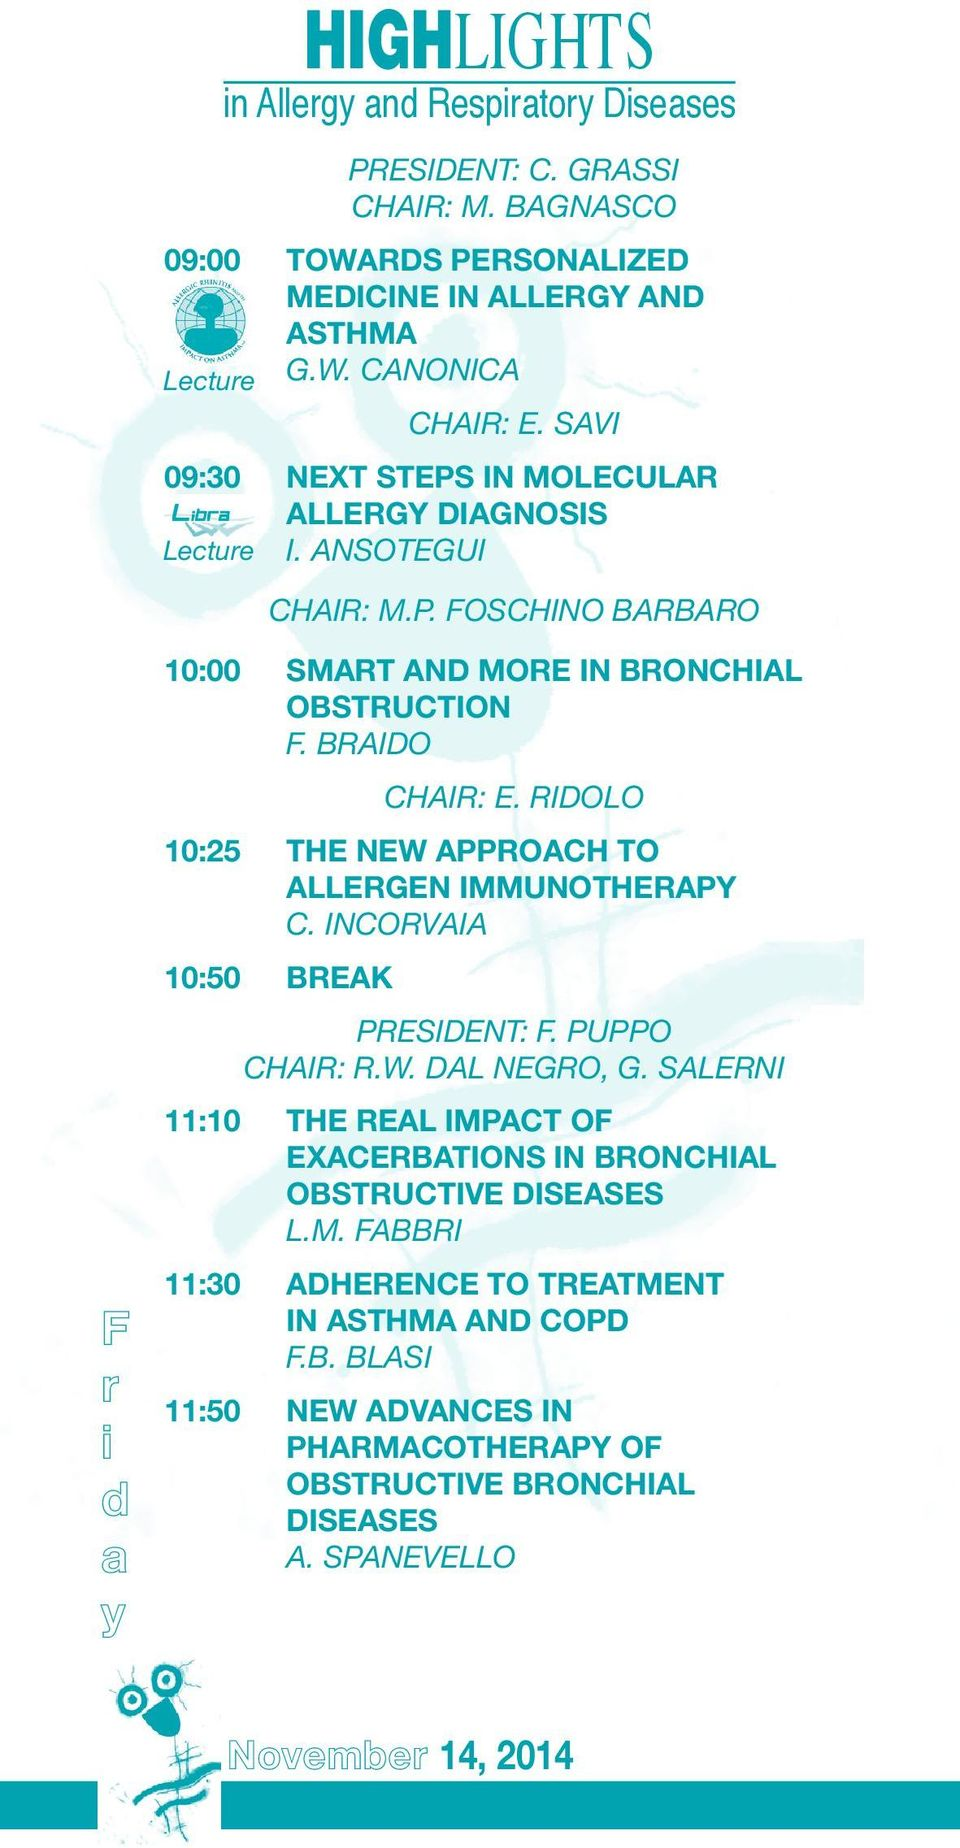 RIDOLO 10:25 THE NEW APPROACH TO ALLERGEN IMMUNOTHERAPY C. INCORVAIA 10:50 BREAK PRESIDENT: F. PUPPO CHAIR: R.W. DAL NEGRO, G.